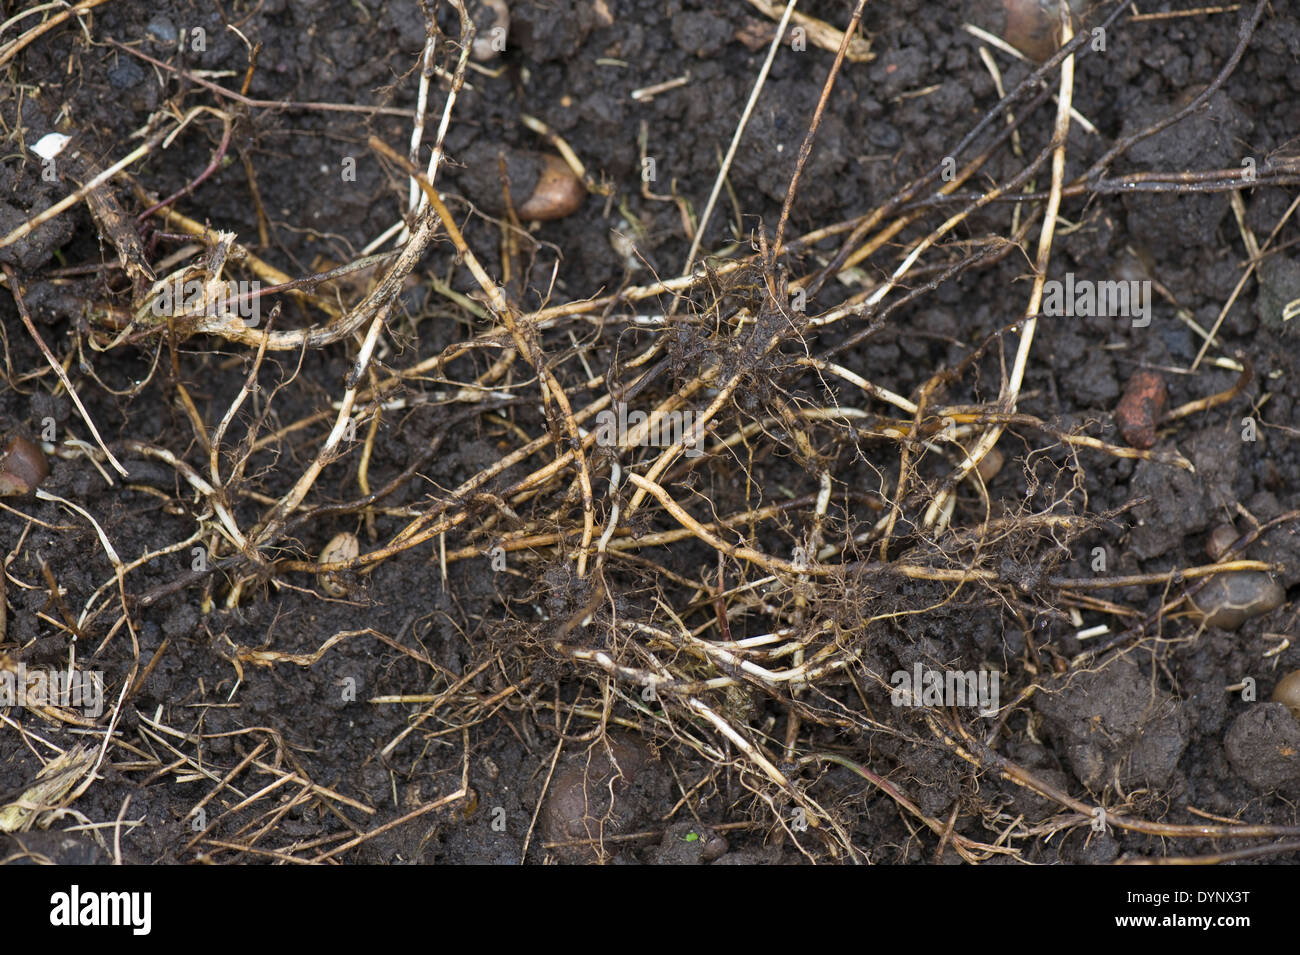 Couch rhizomes, Agropyron repens, dug up from an established vegetable garden - Stock Image